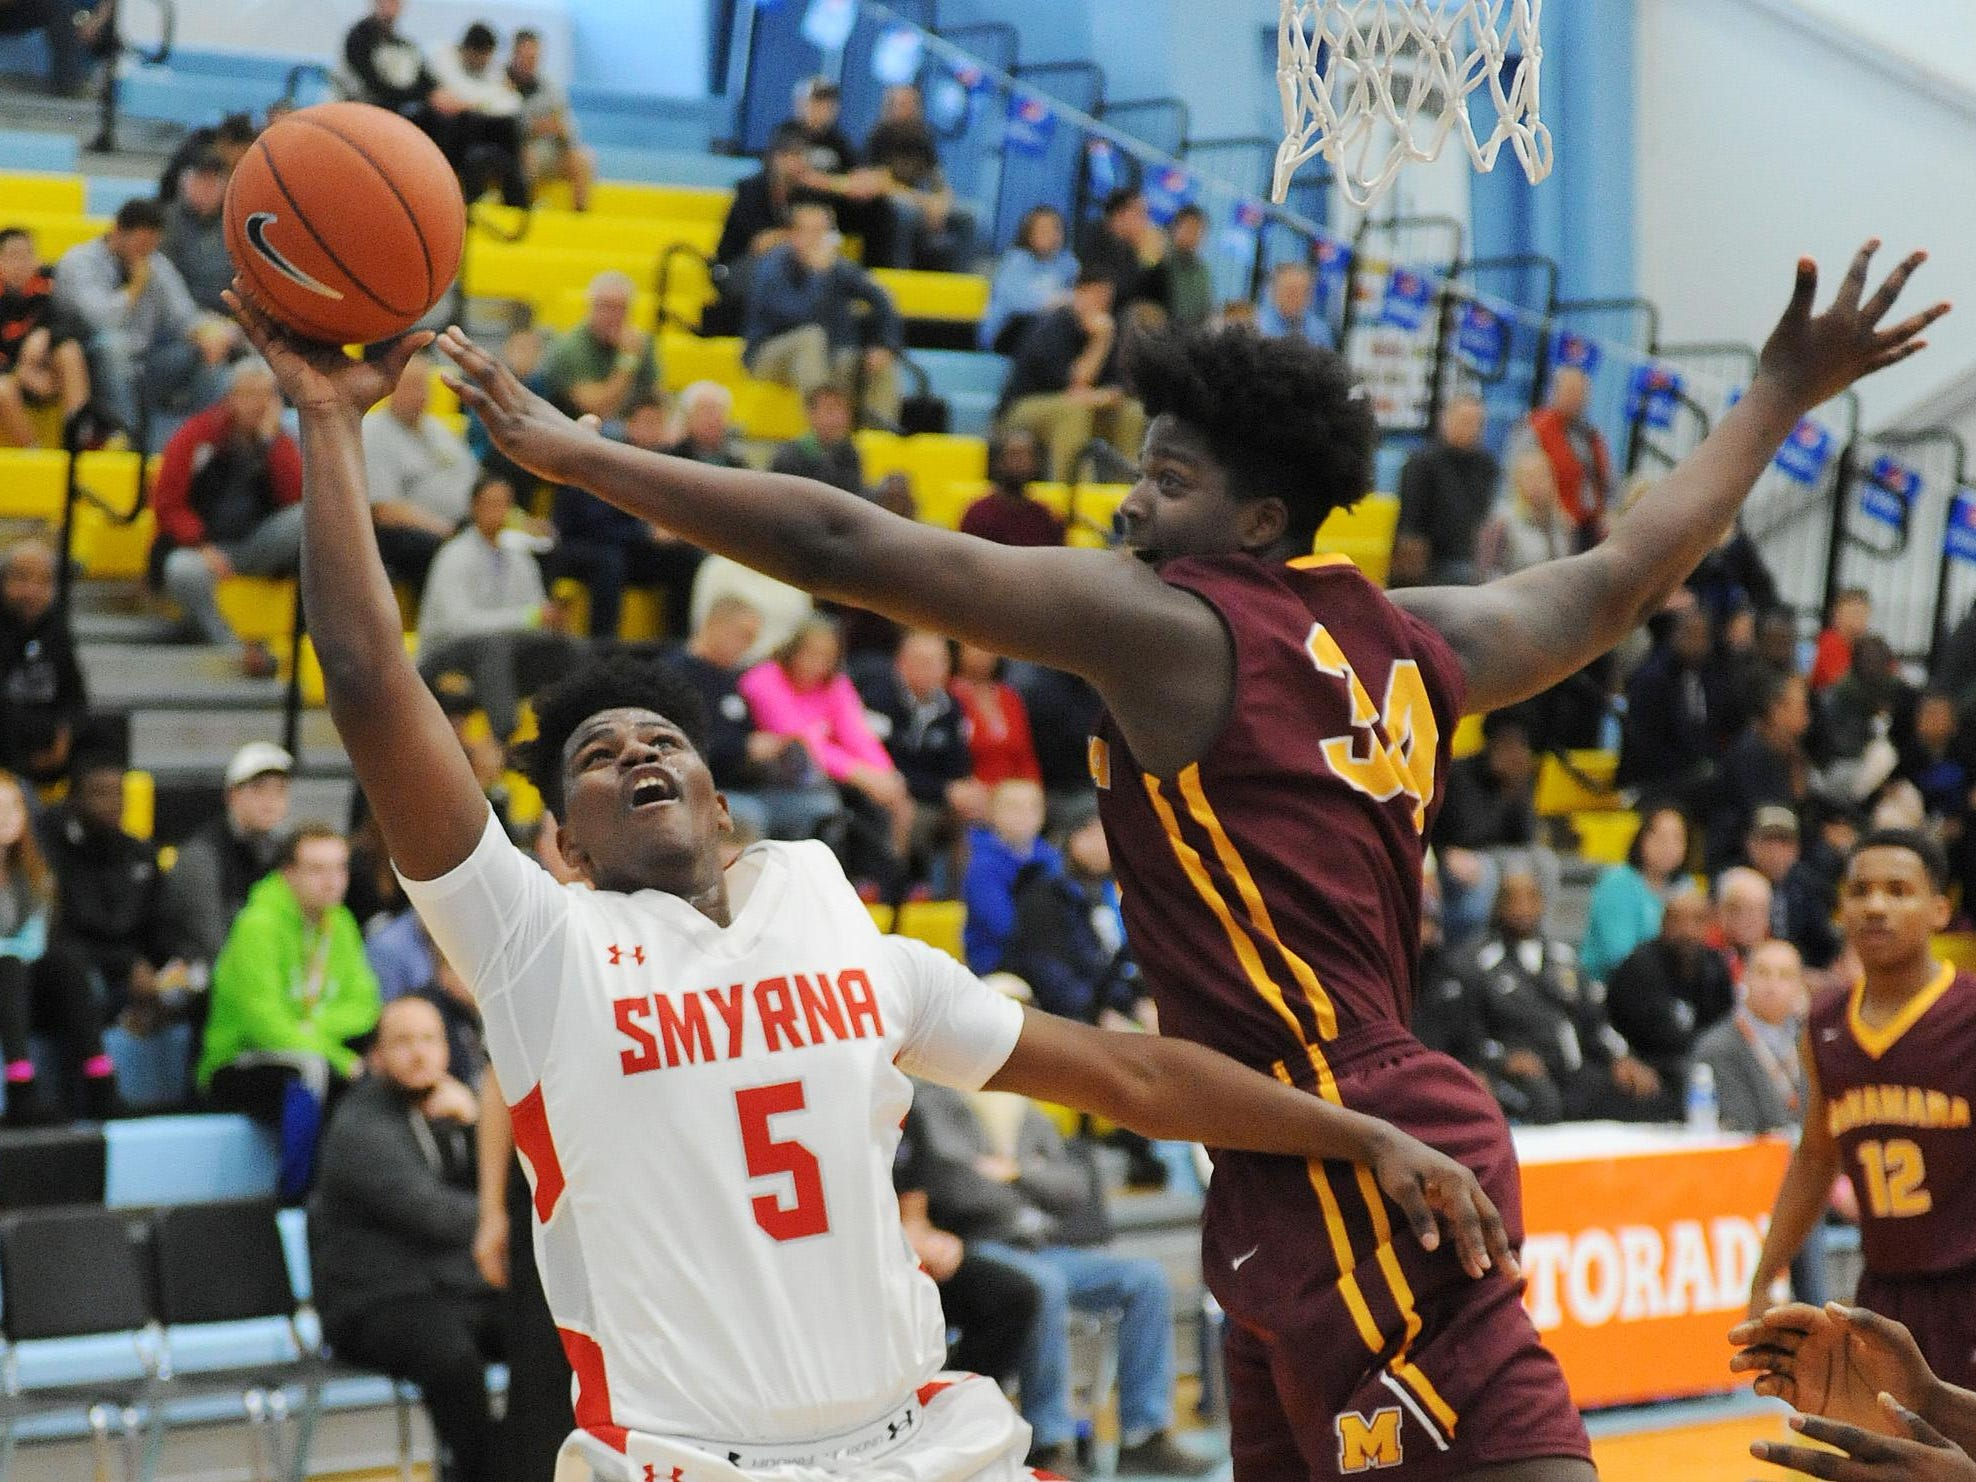 Smyrna's #5 Jaymeir Garnett gets 2 points as Bishop McNamara'a Makhel Mitchell attempts block as The Annual Slam Dunk to the Beach Basketball Tournament started at Cape Henlopen High School in Lewes on Tuesday December 27th with Smyrna HS (white) hosting Bishop McNamara HS from Forestville, Md.